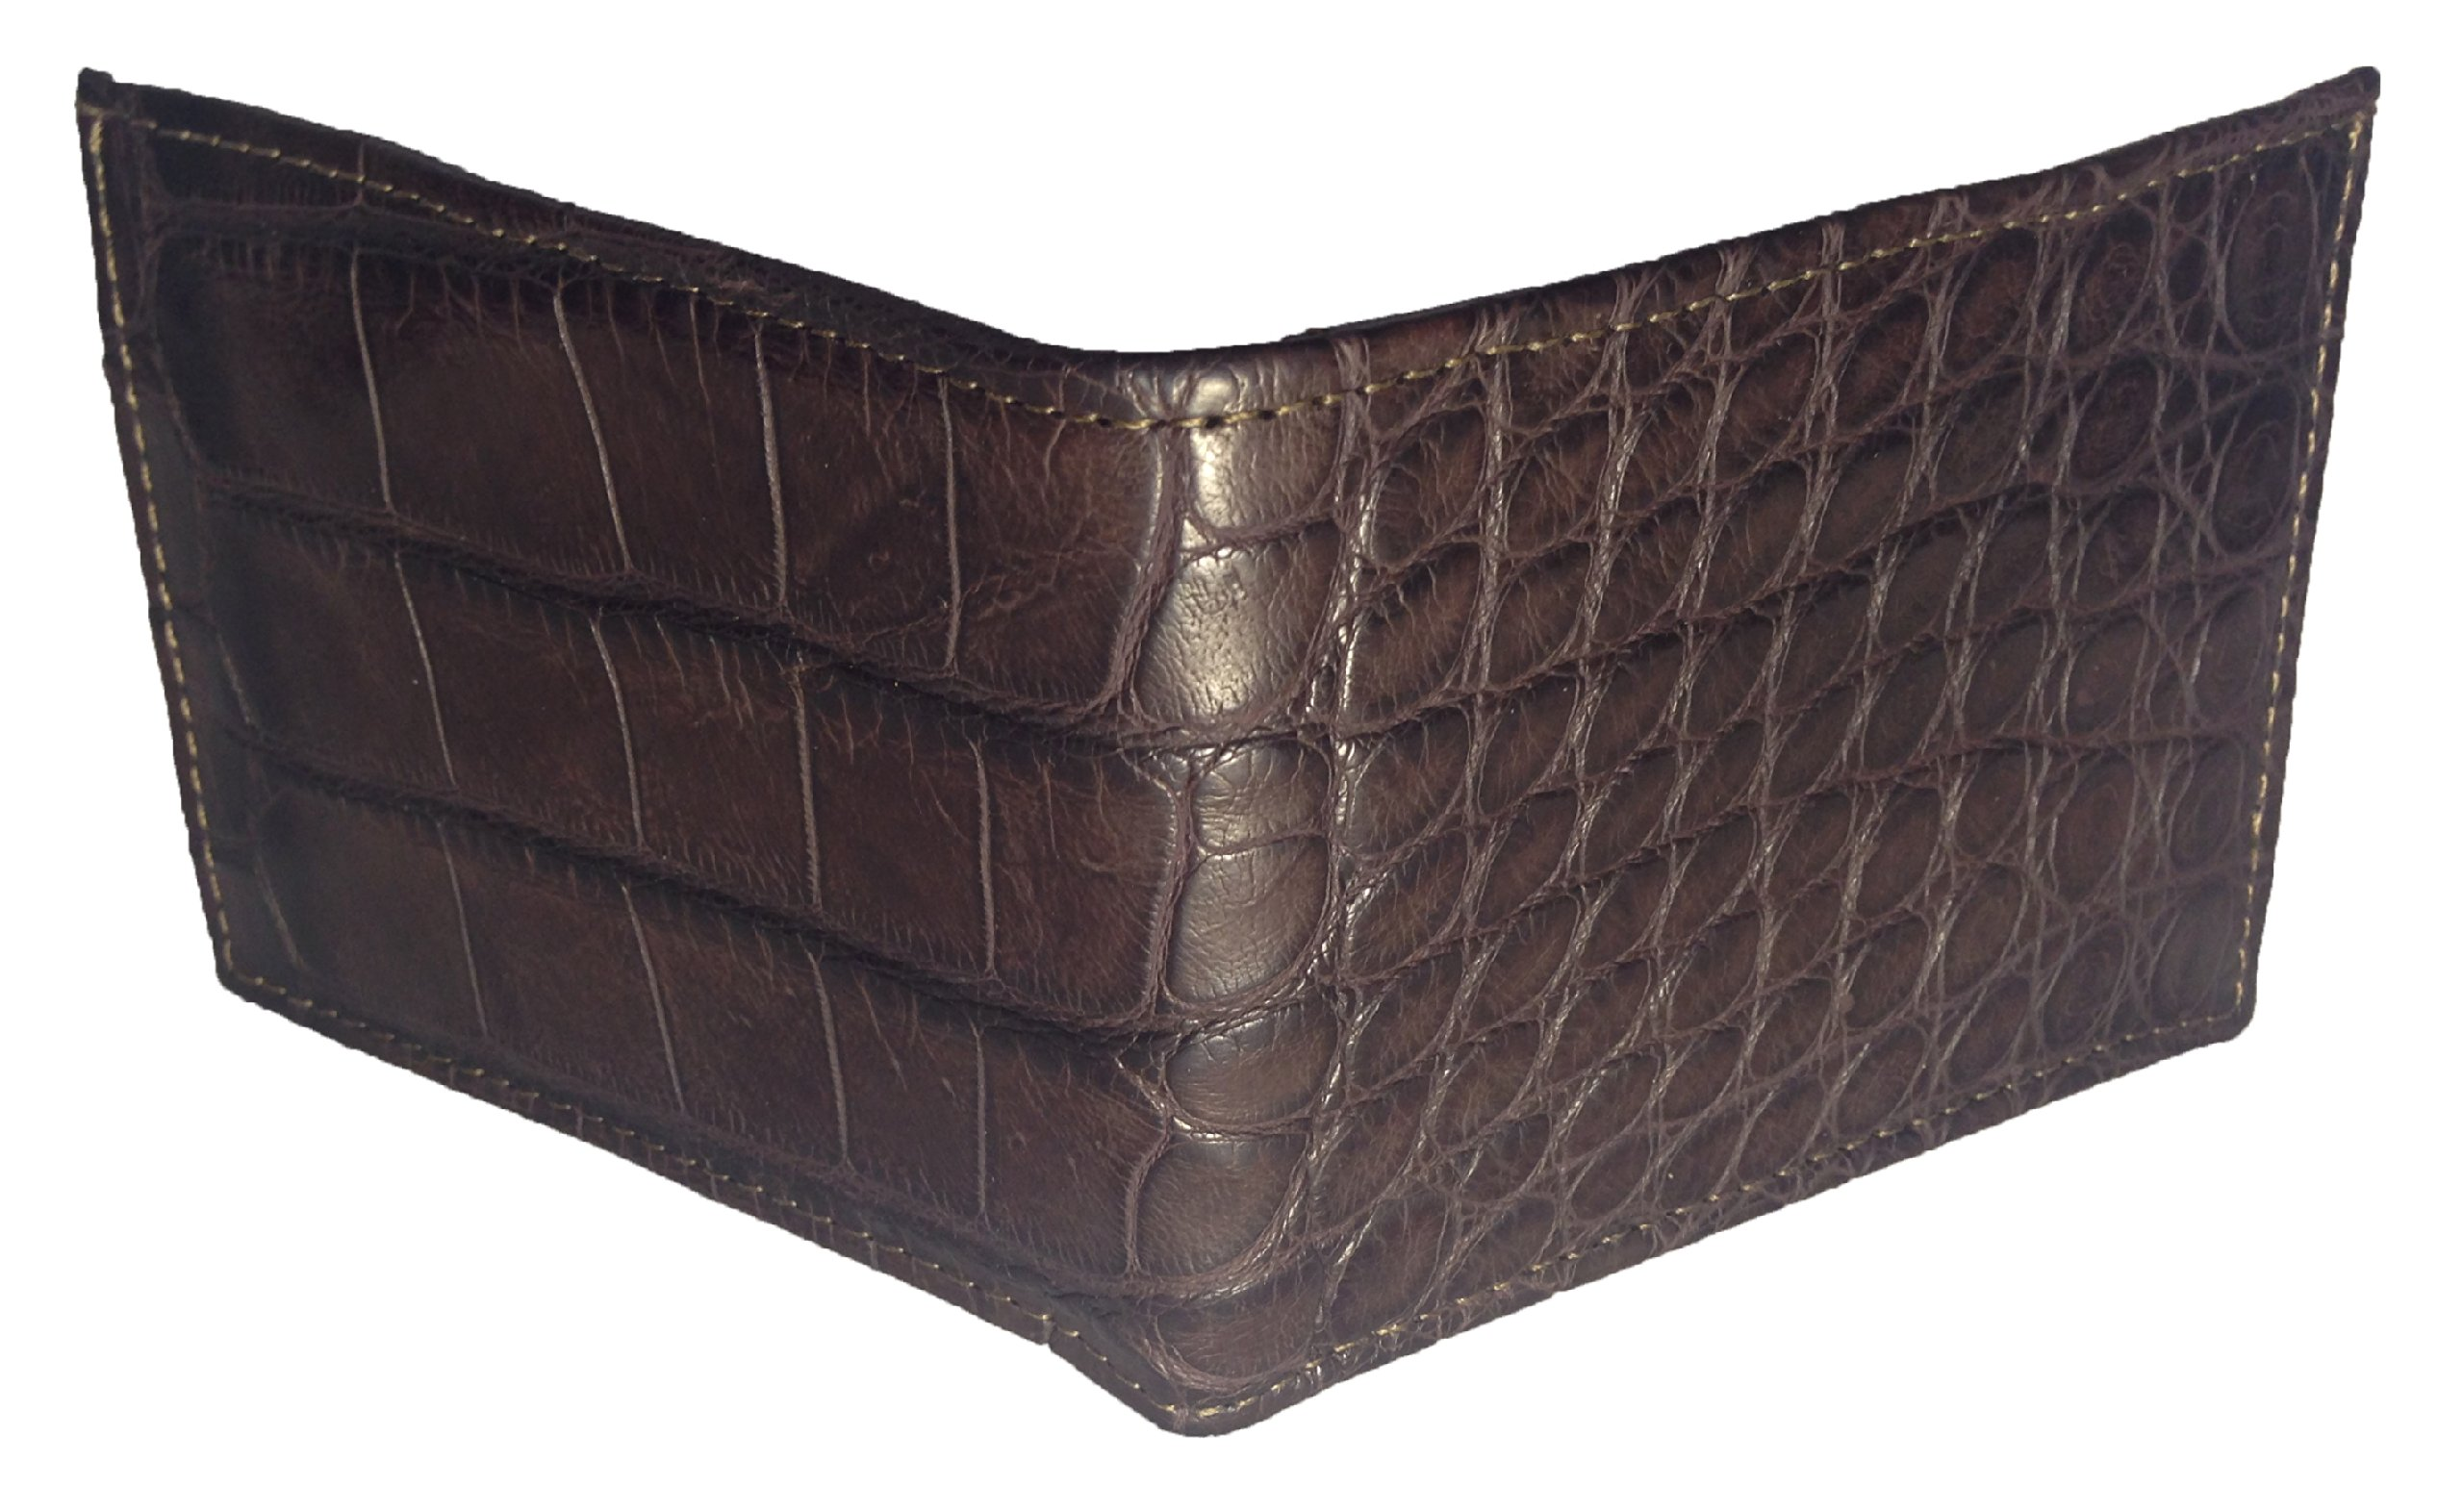 Sultan Genuine Alligator Men's Bifold Wallet - Brown Safari (Semi-Gloss) - One Size